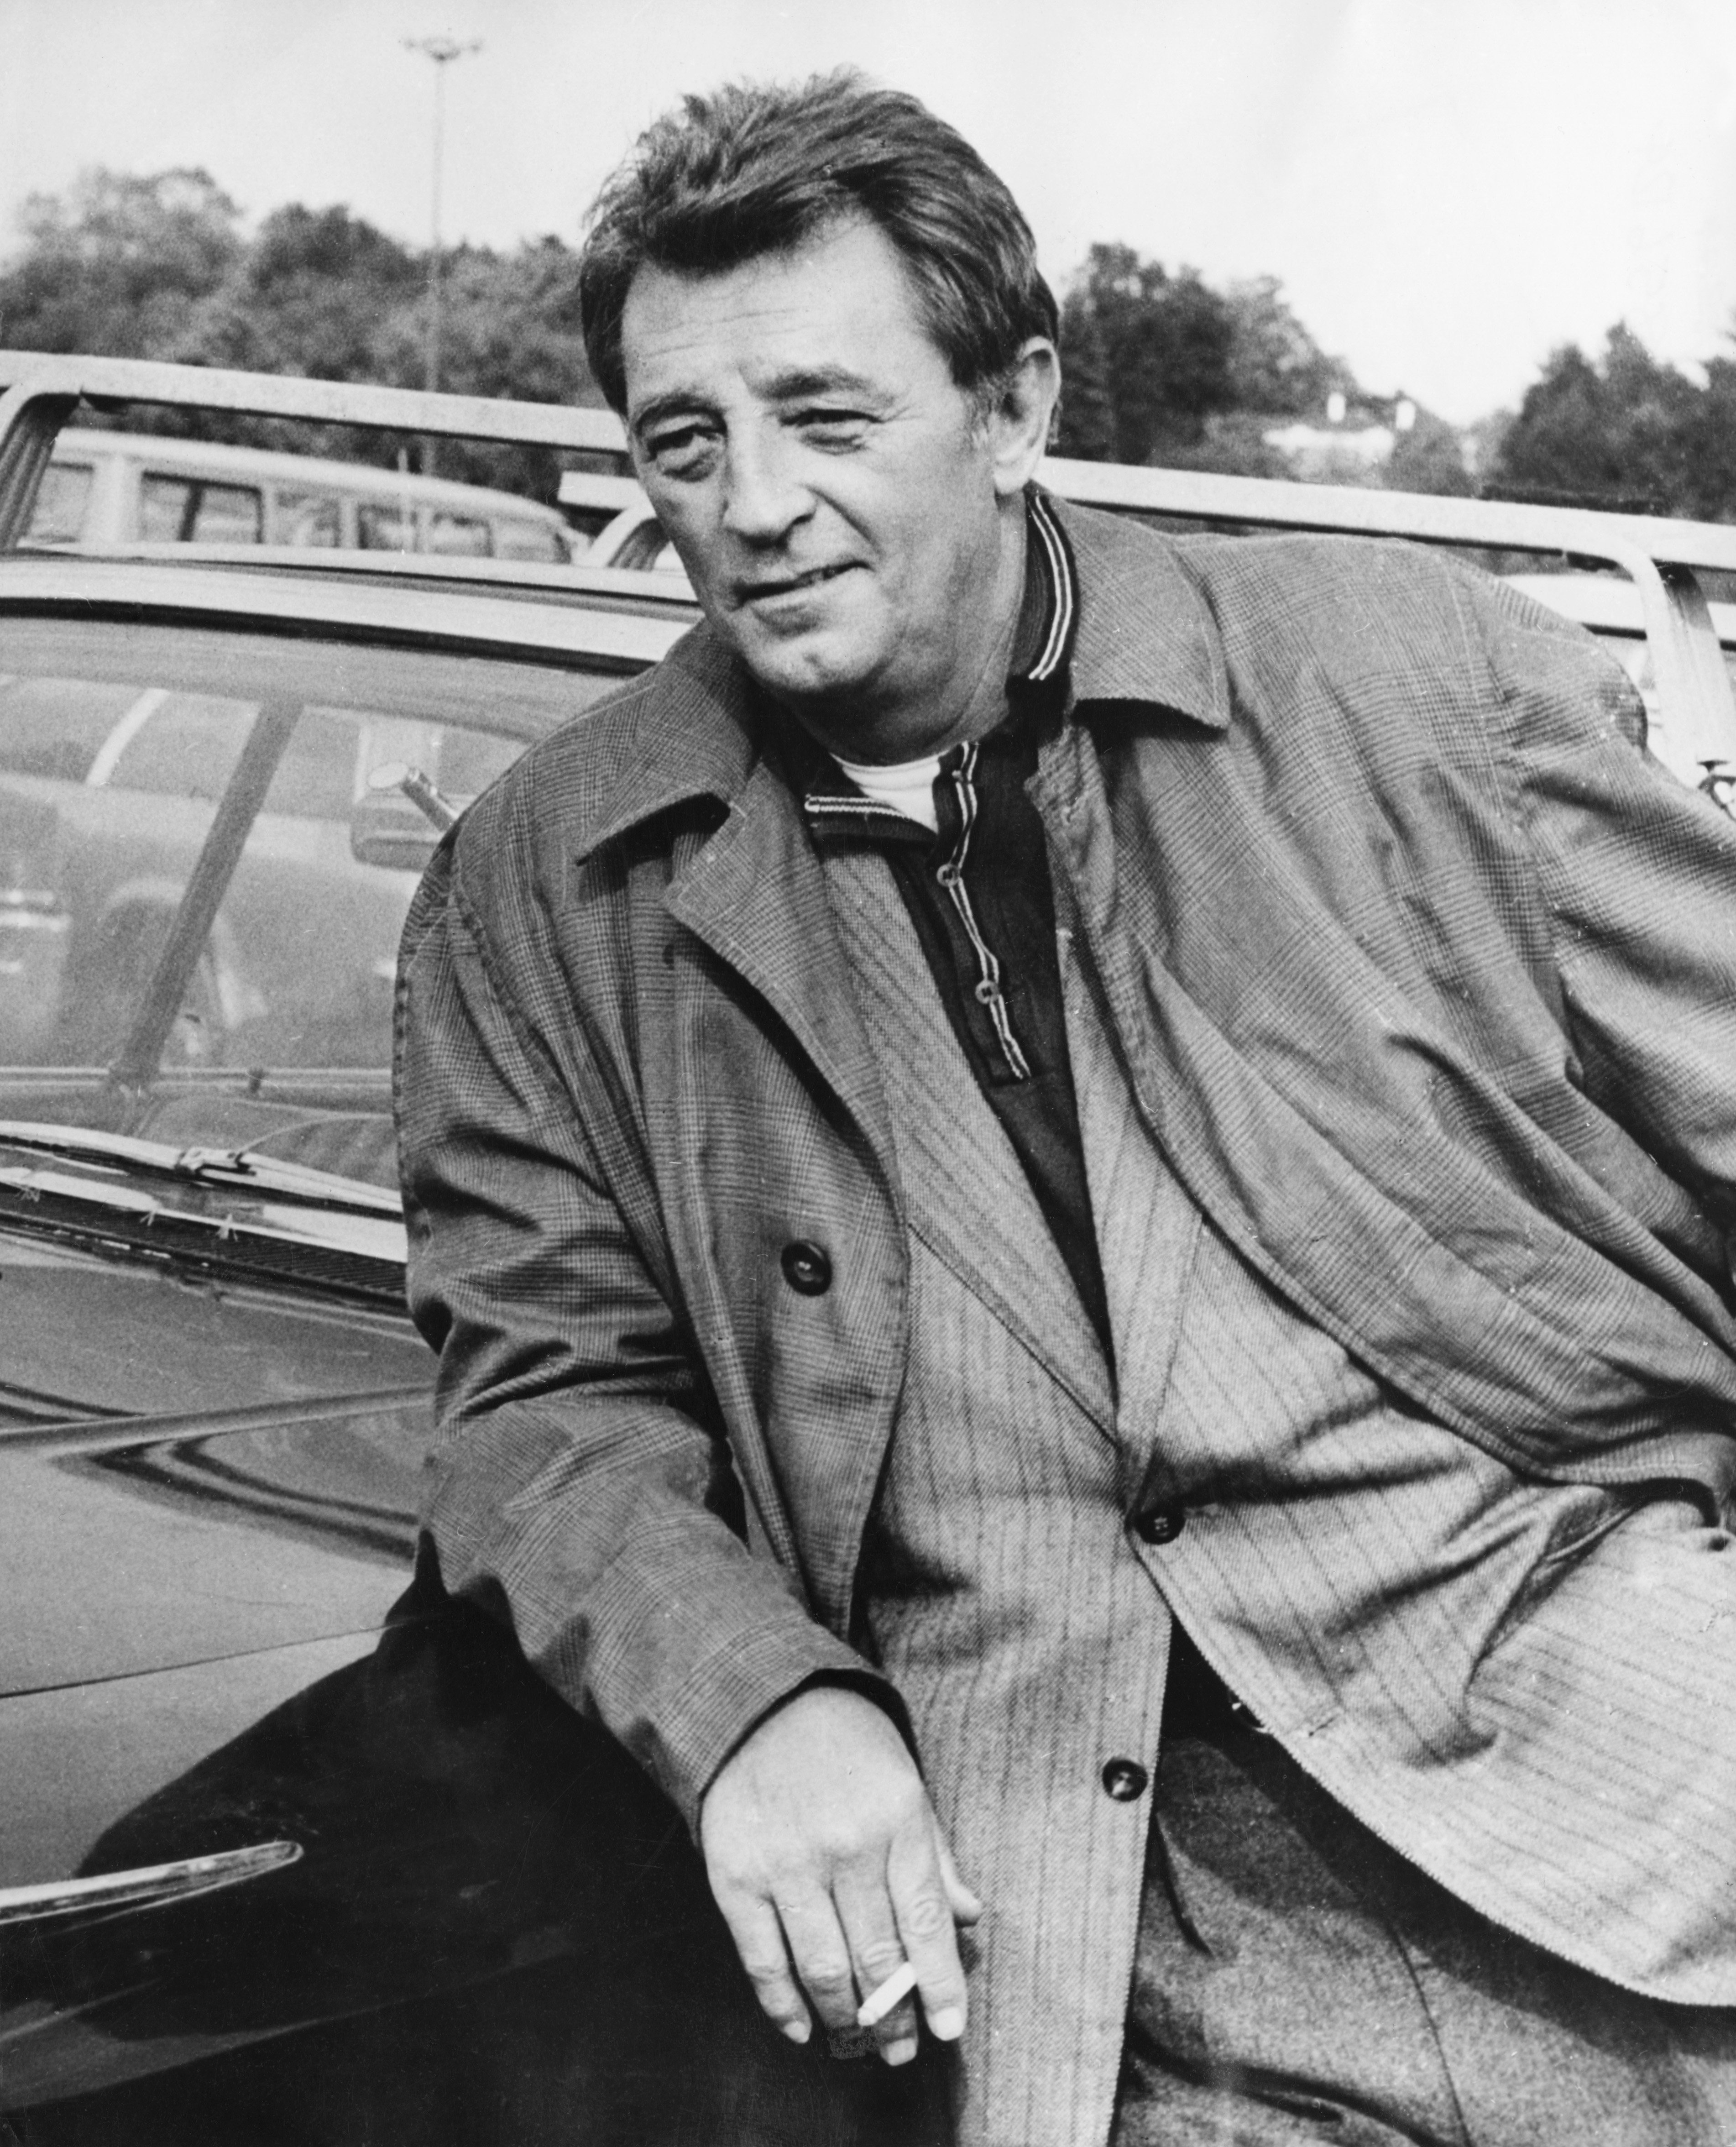 Robert Mitchum, August 6, 1917 l Image: Getty Images